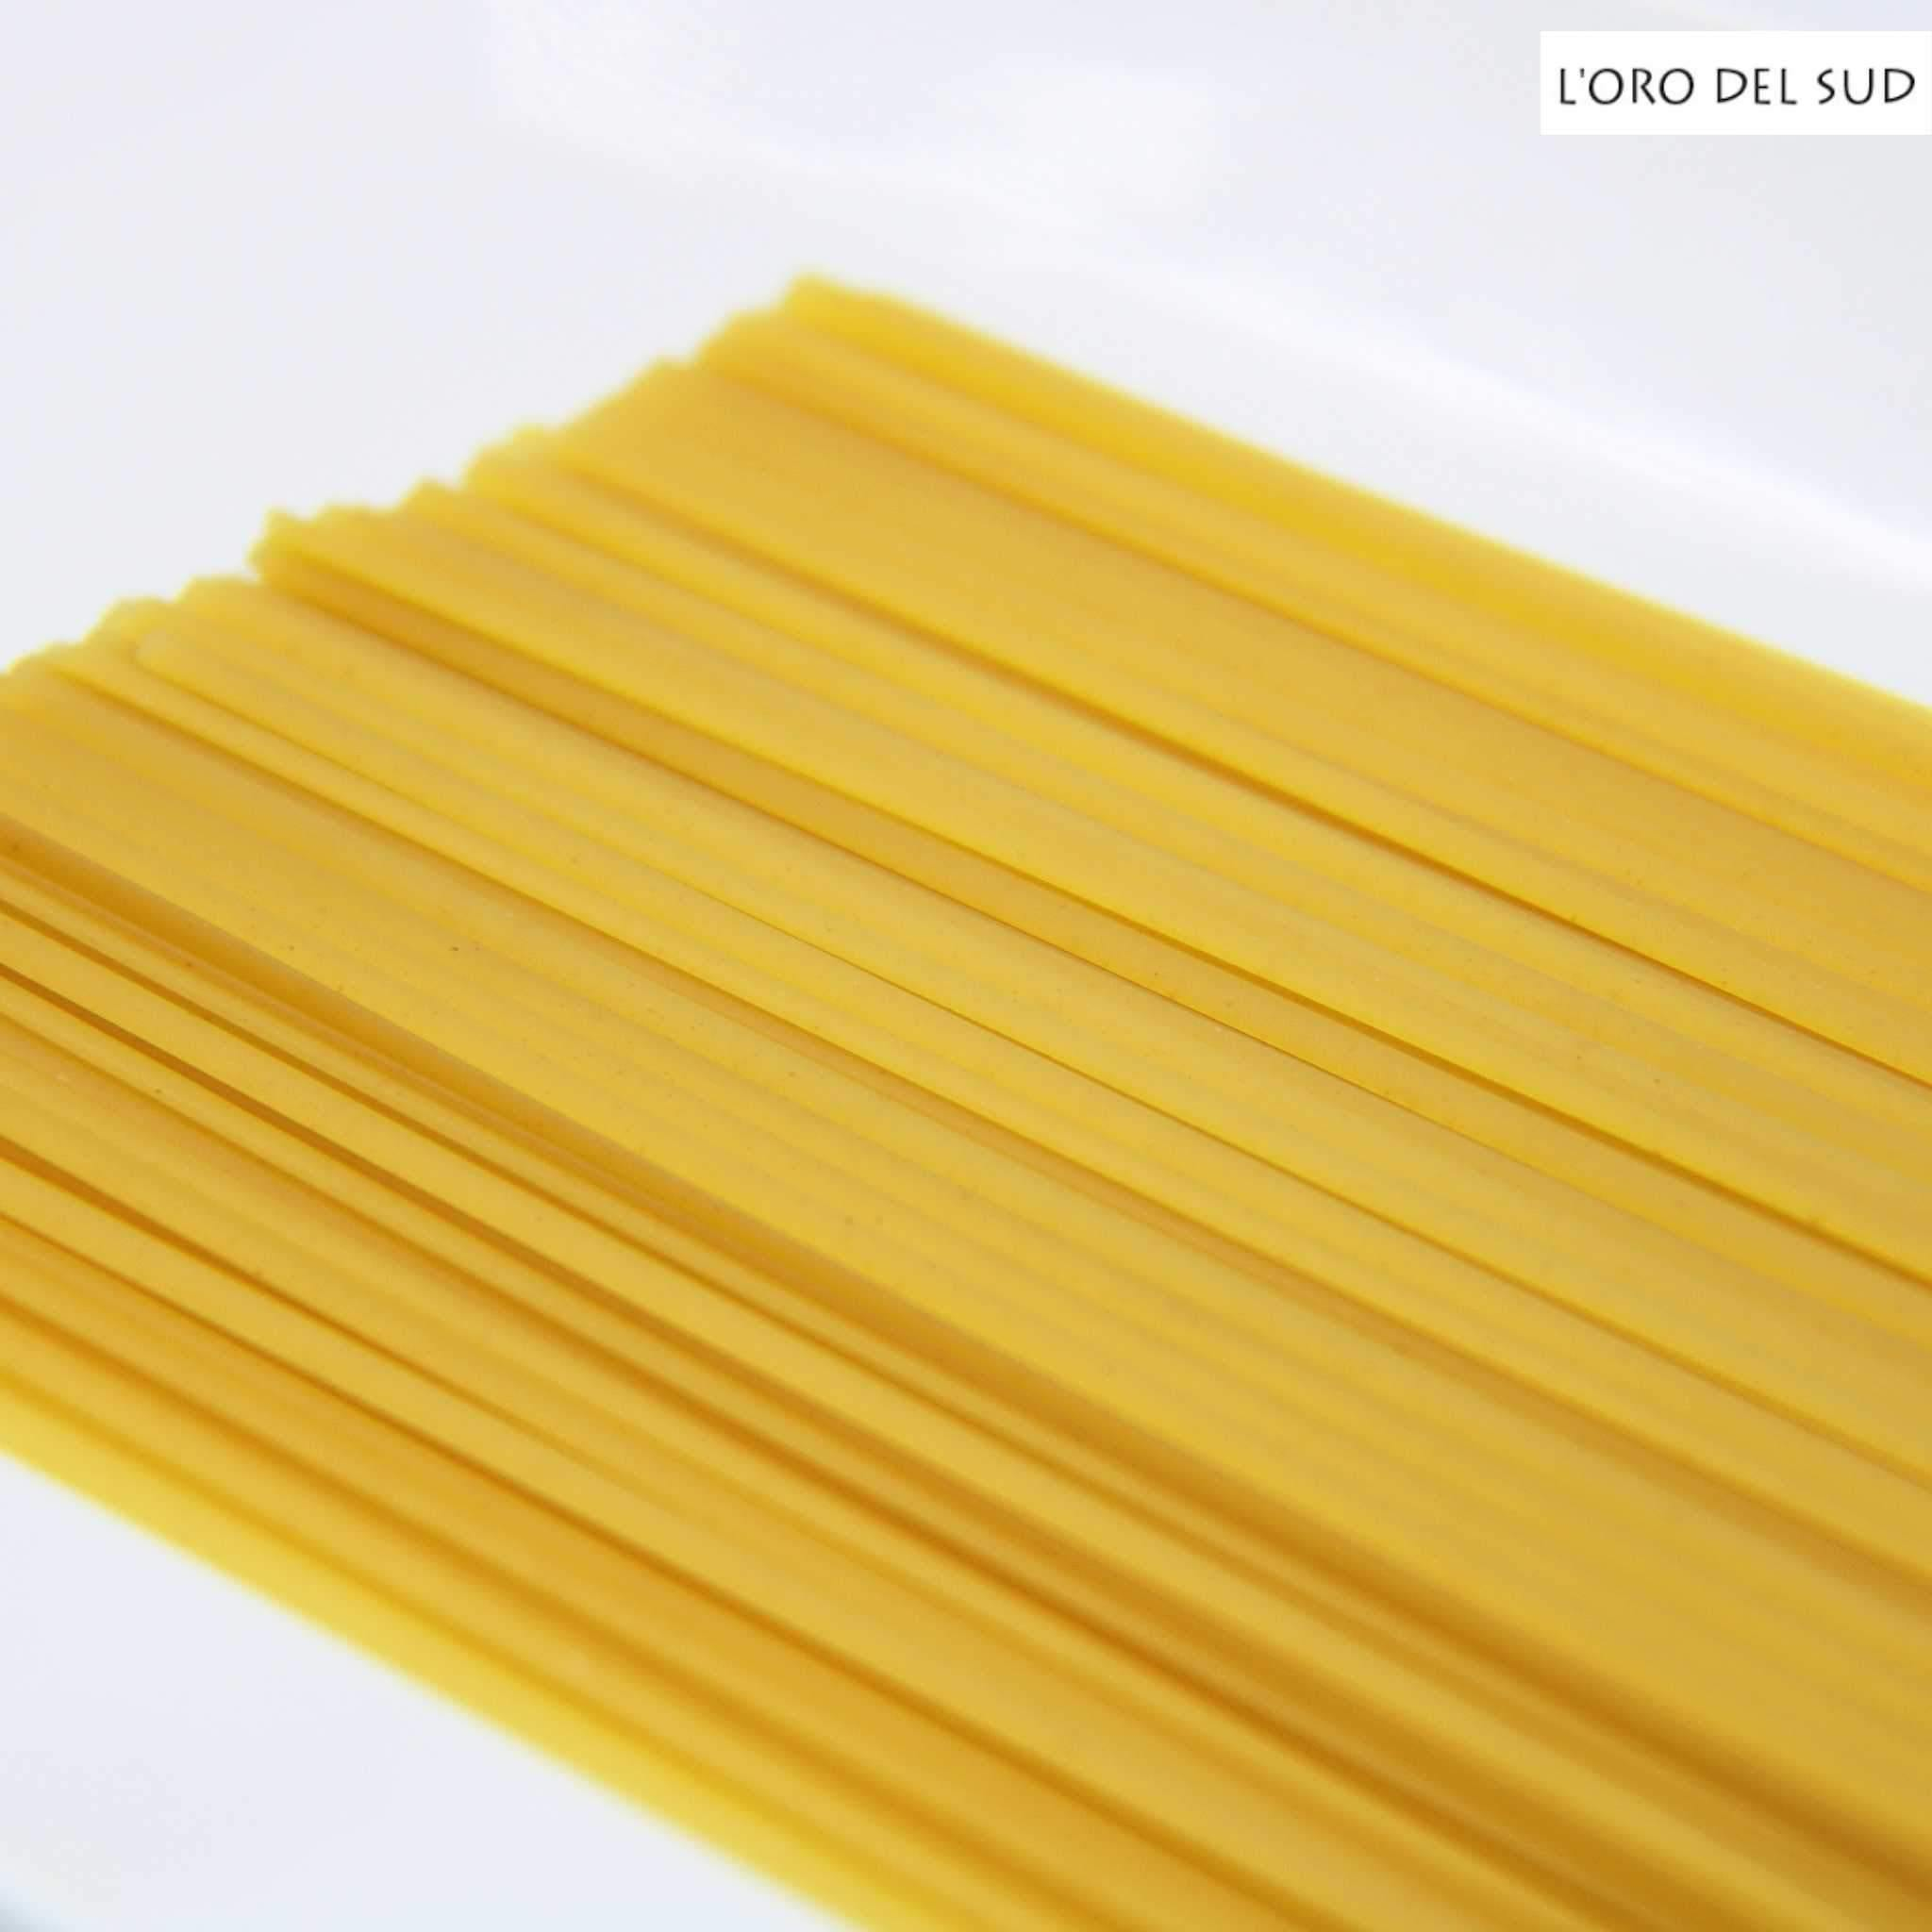 L'Oro Del Sud Linguine Pasta - 10lb Bag - Wholesale Italian Food